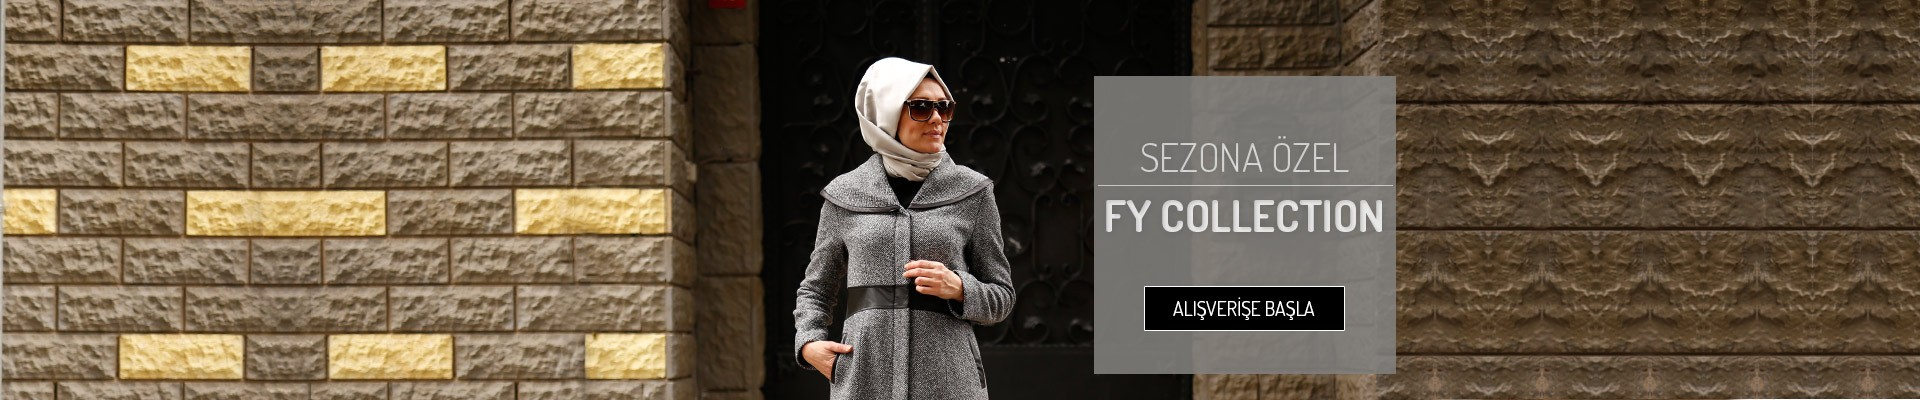 FY Collection